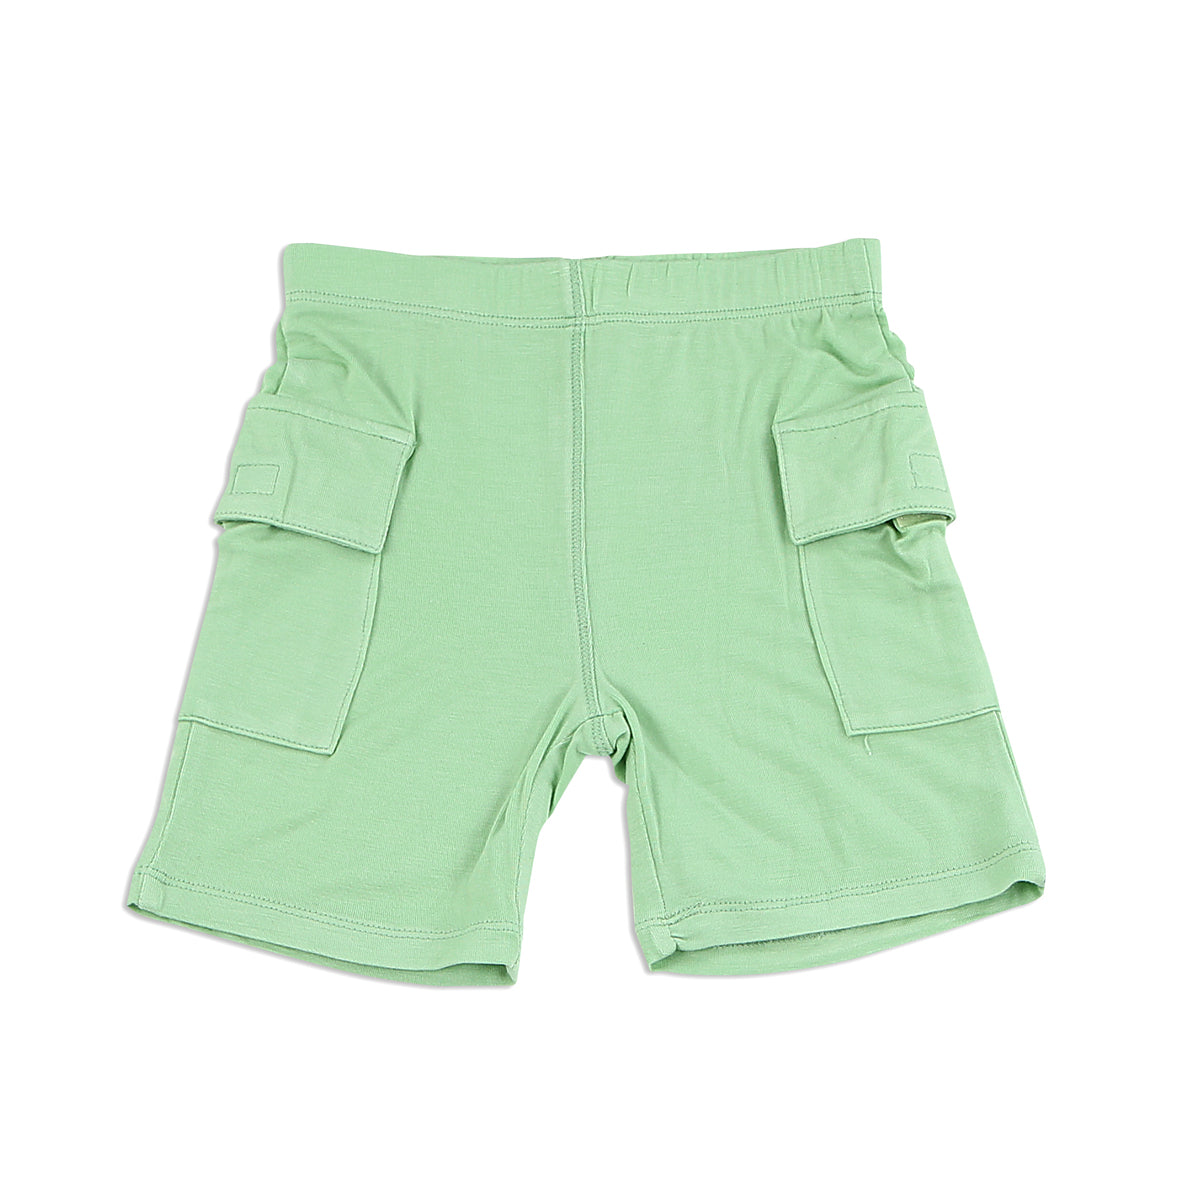 Bamboo Cargo Pocket Shorts (Cricket)